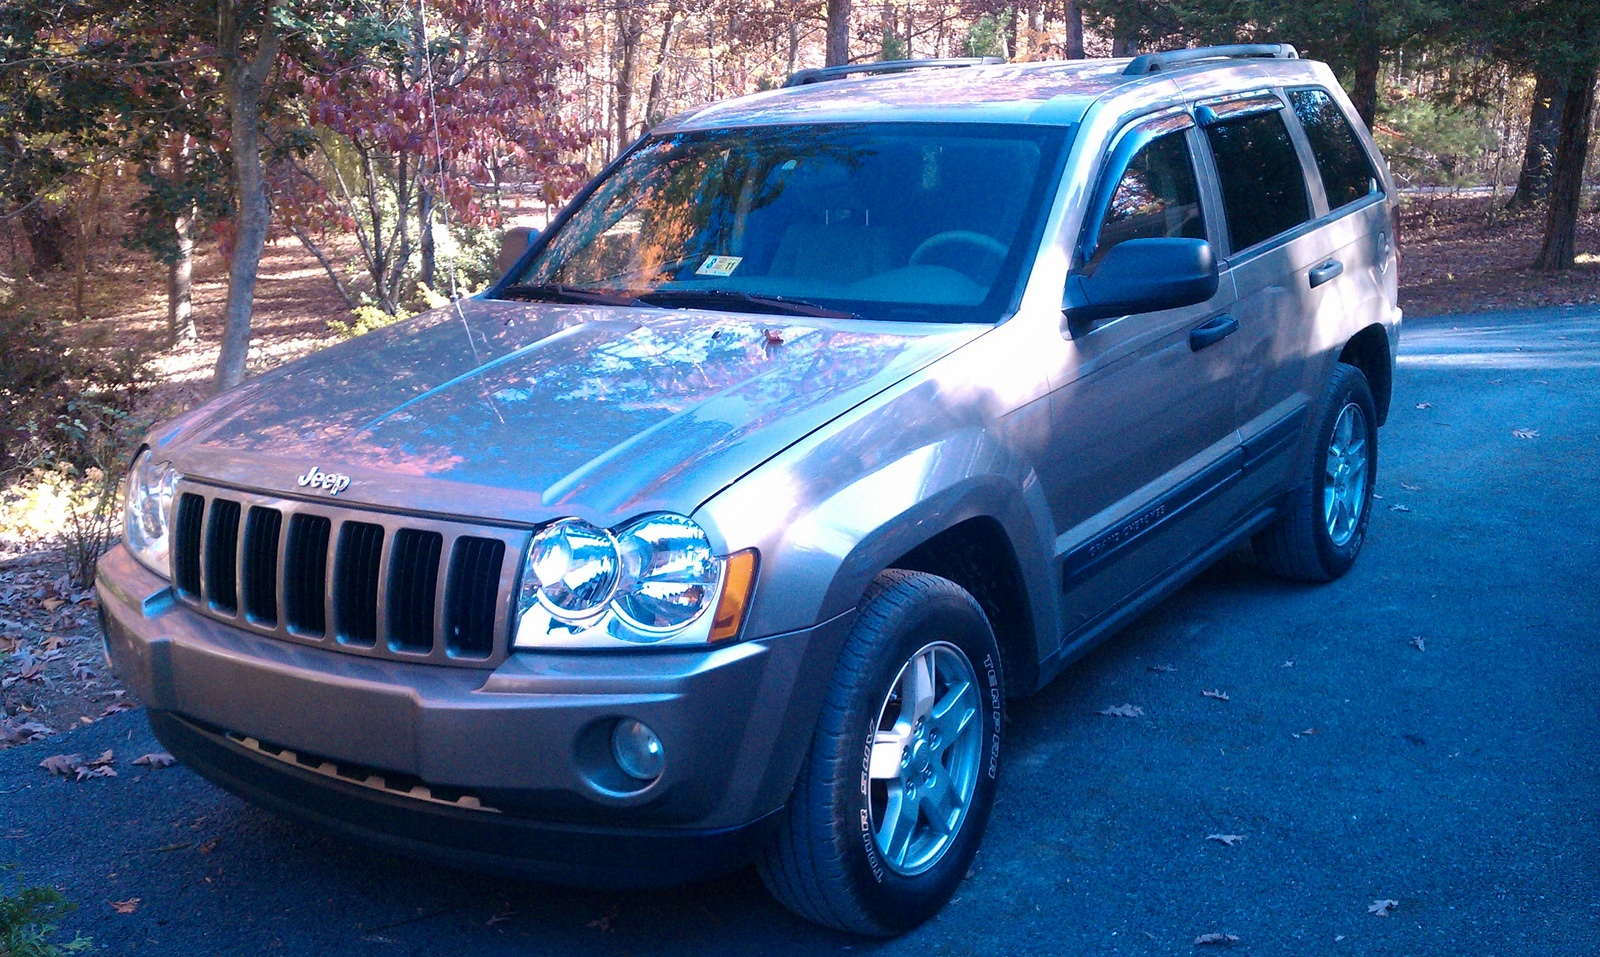 2005 jeep grand cherokee pictures cargurus. Black Bedroom Furniture Sets. Home Design Ideas